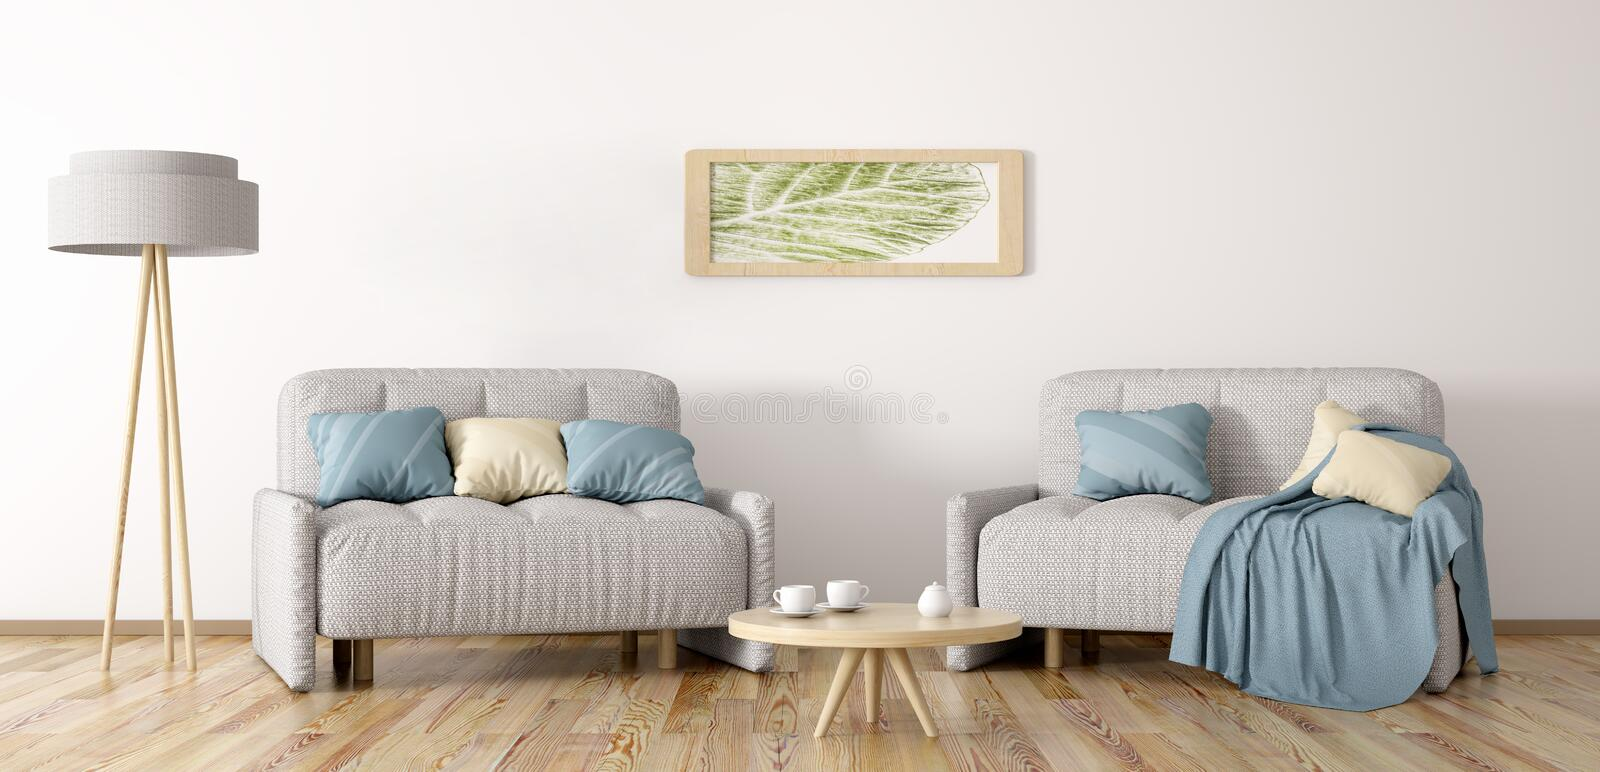 Living room with two armchairs 3d rendering. Living room with two armchairs, coffee table and lamp, 3d rendering royalty free illustration